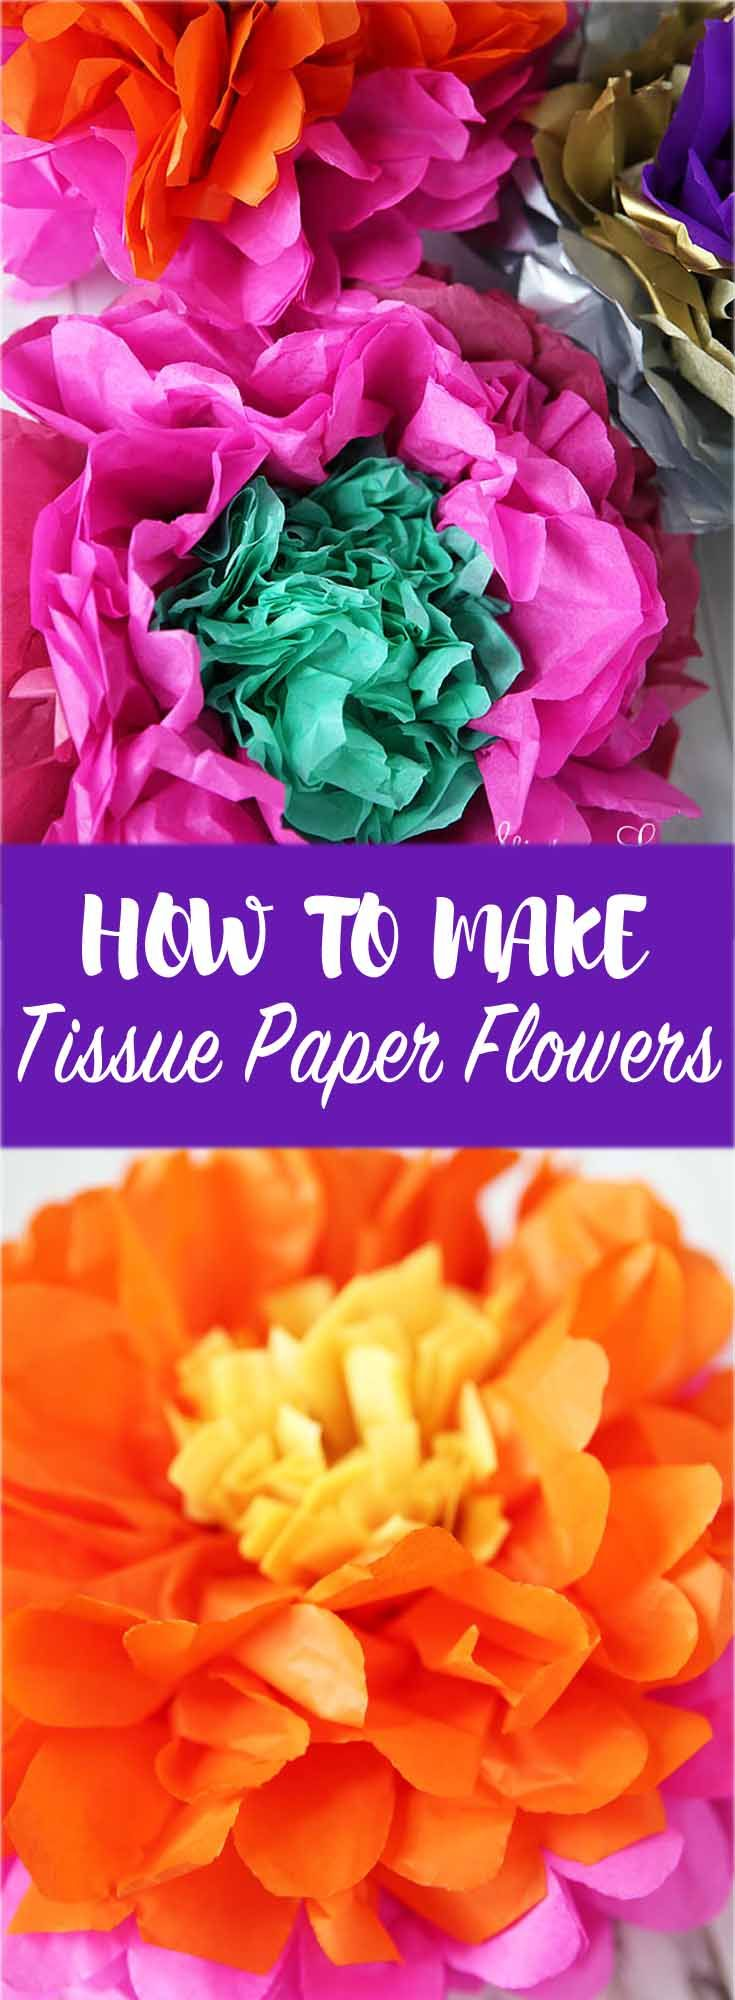 How to make tissue paper flowers These inexpensive and easy flowers